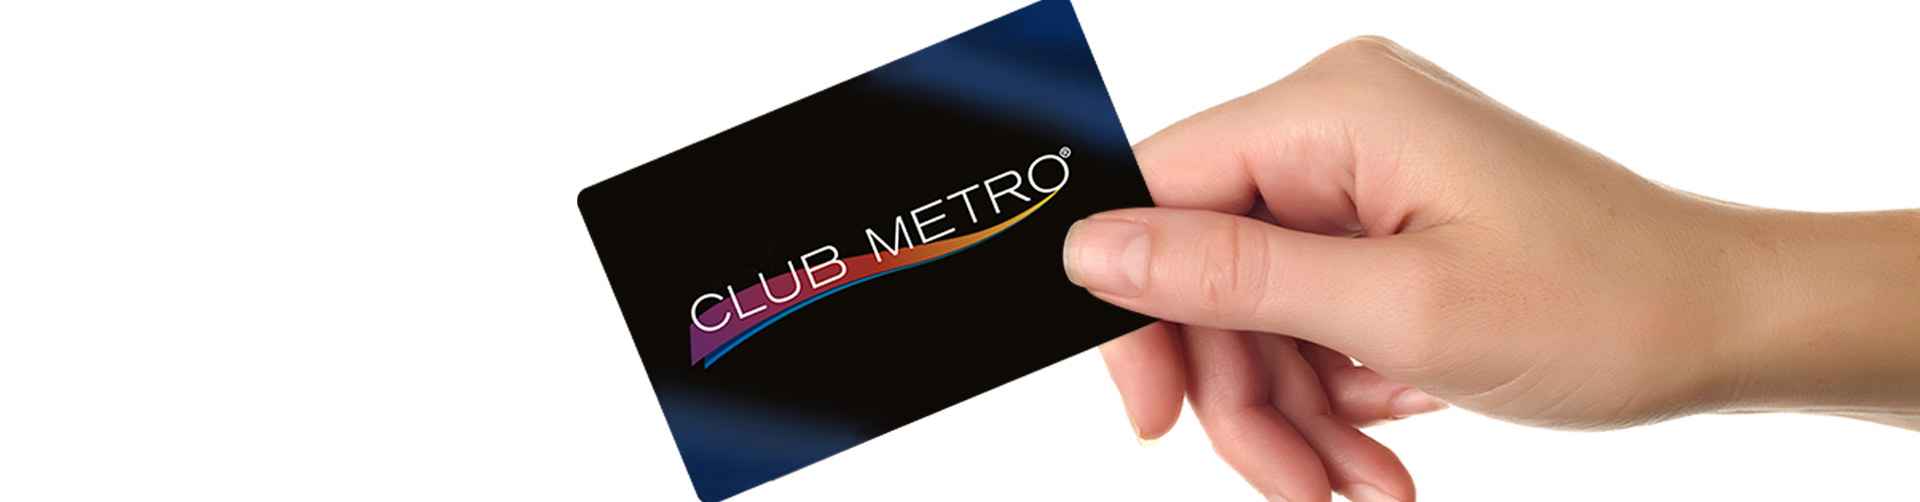 motor city casino club metro card